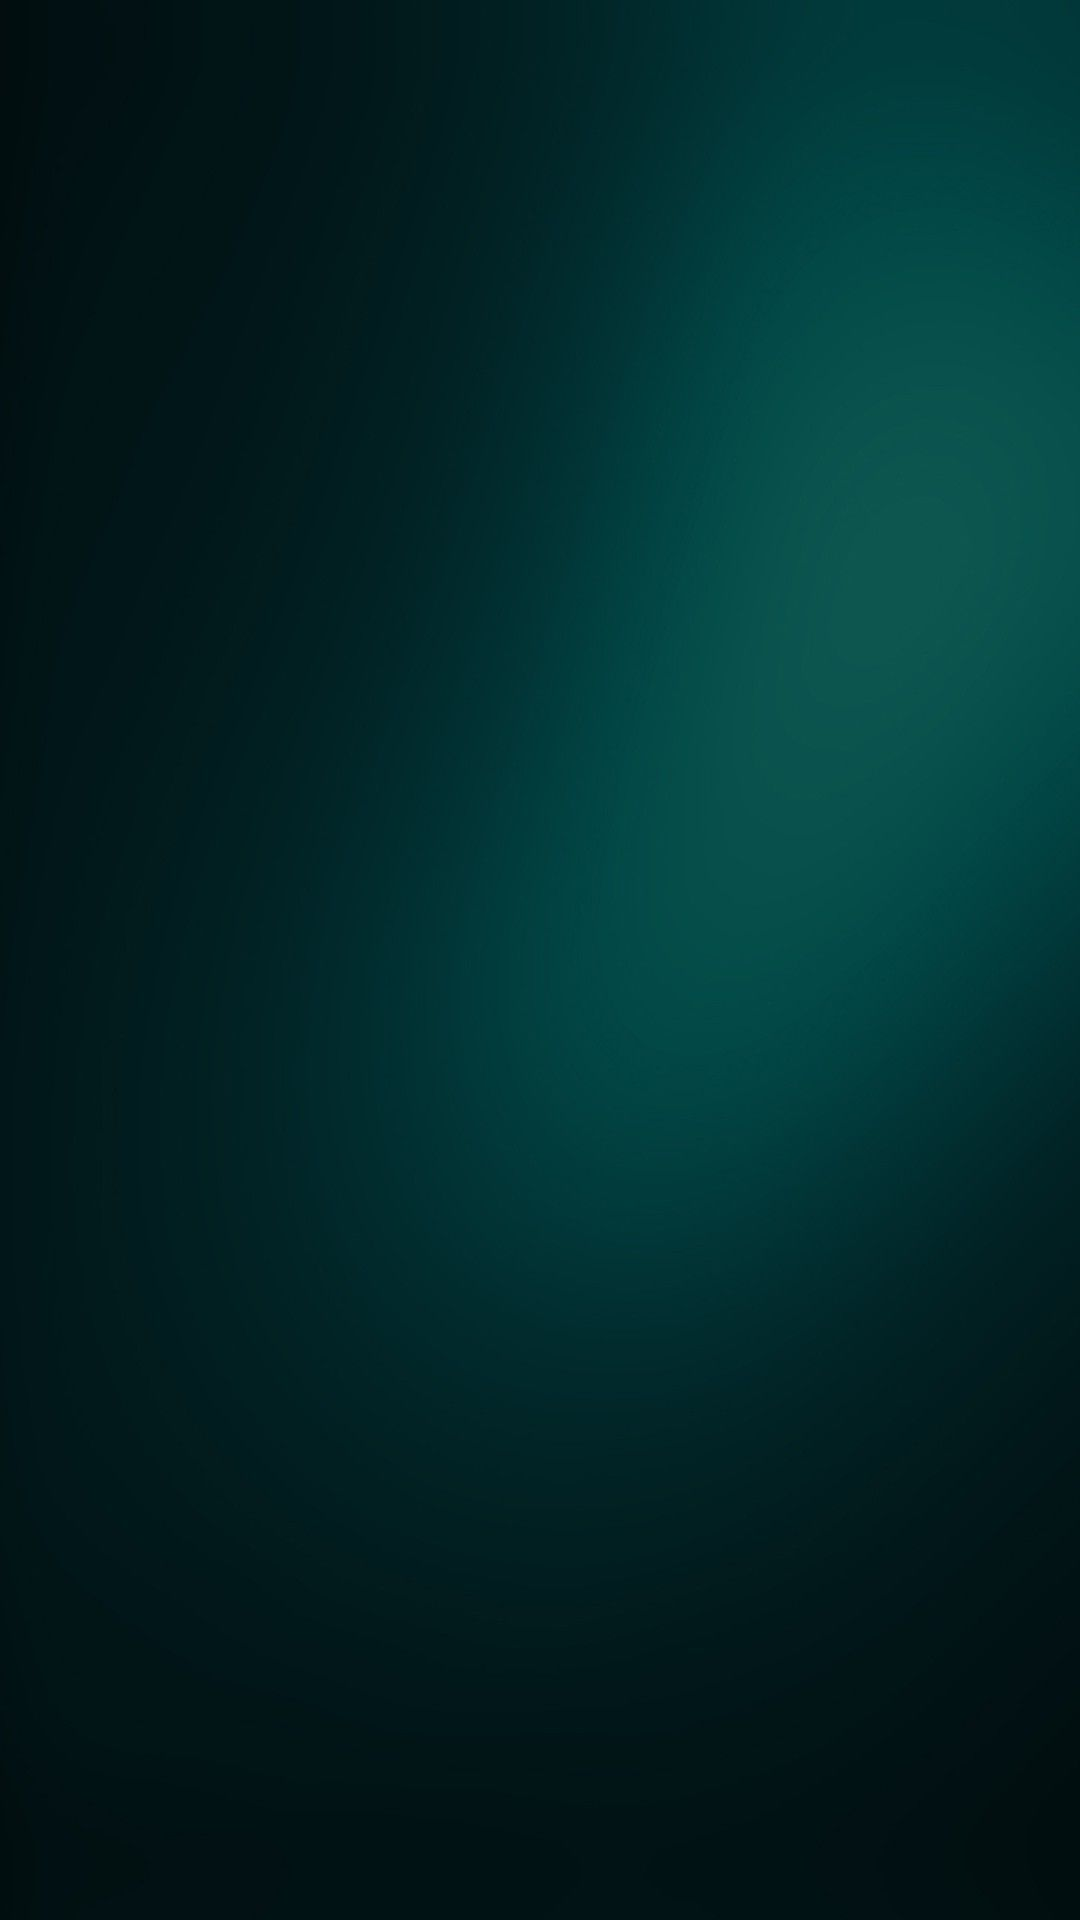 Dark Green Iphone Wallpapers Paint Colors Exterior Paint Wallpaper